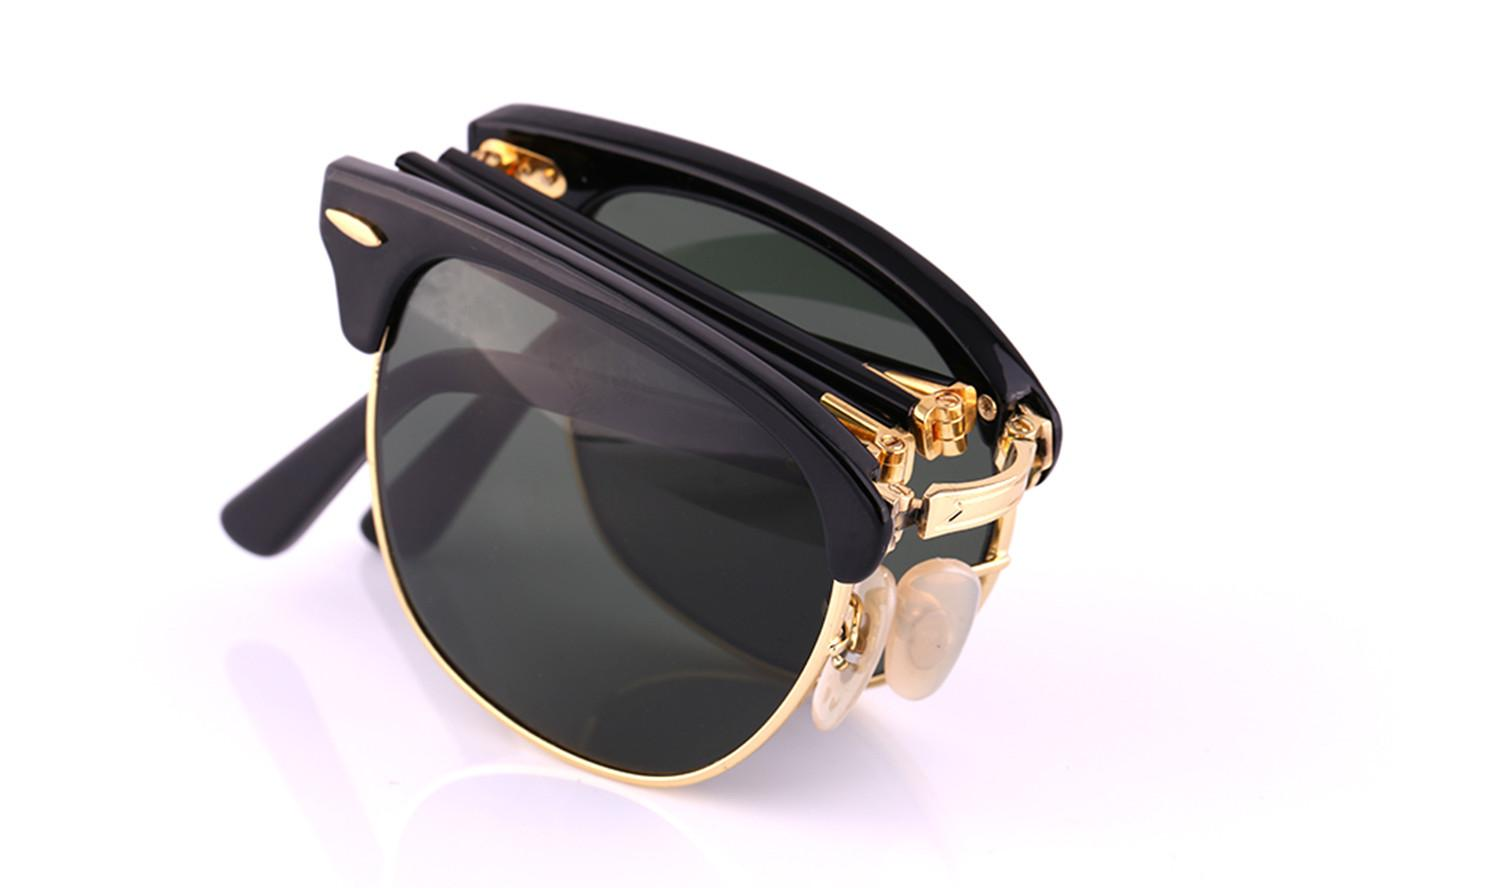 AOOKO Hot Sale Newest Fashion Classical fold Sunglasses Master Folding Glasses Rollaway Women Brand Designer Men Spectacles with box 51mm